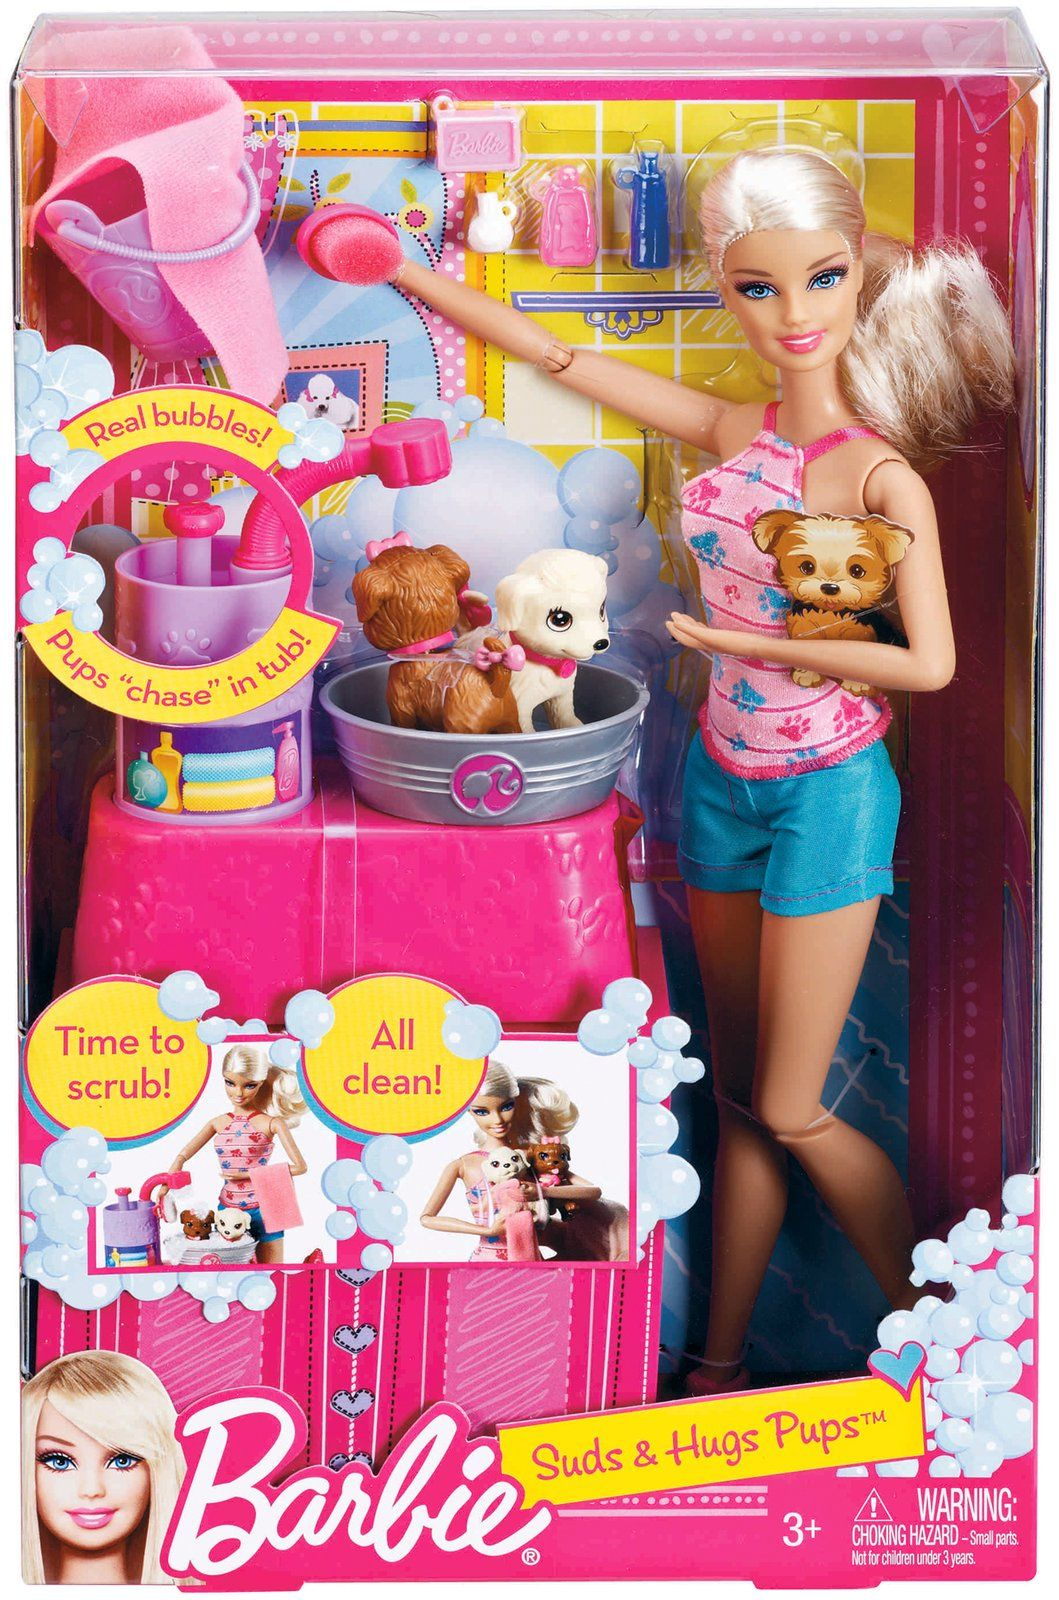 Barbie deluxe furniture stovetop to tabletop kitchen doll target - Barbie Suds Hugs Pups Playset Free Shipping